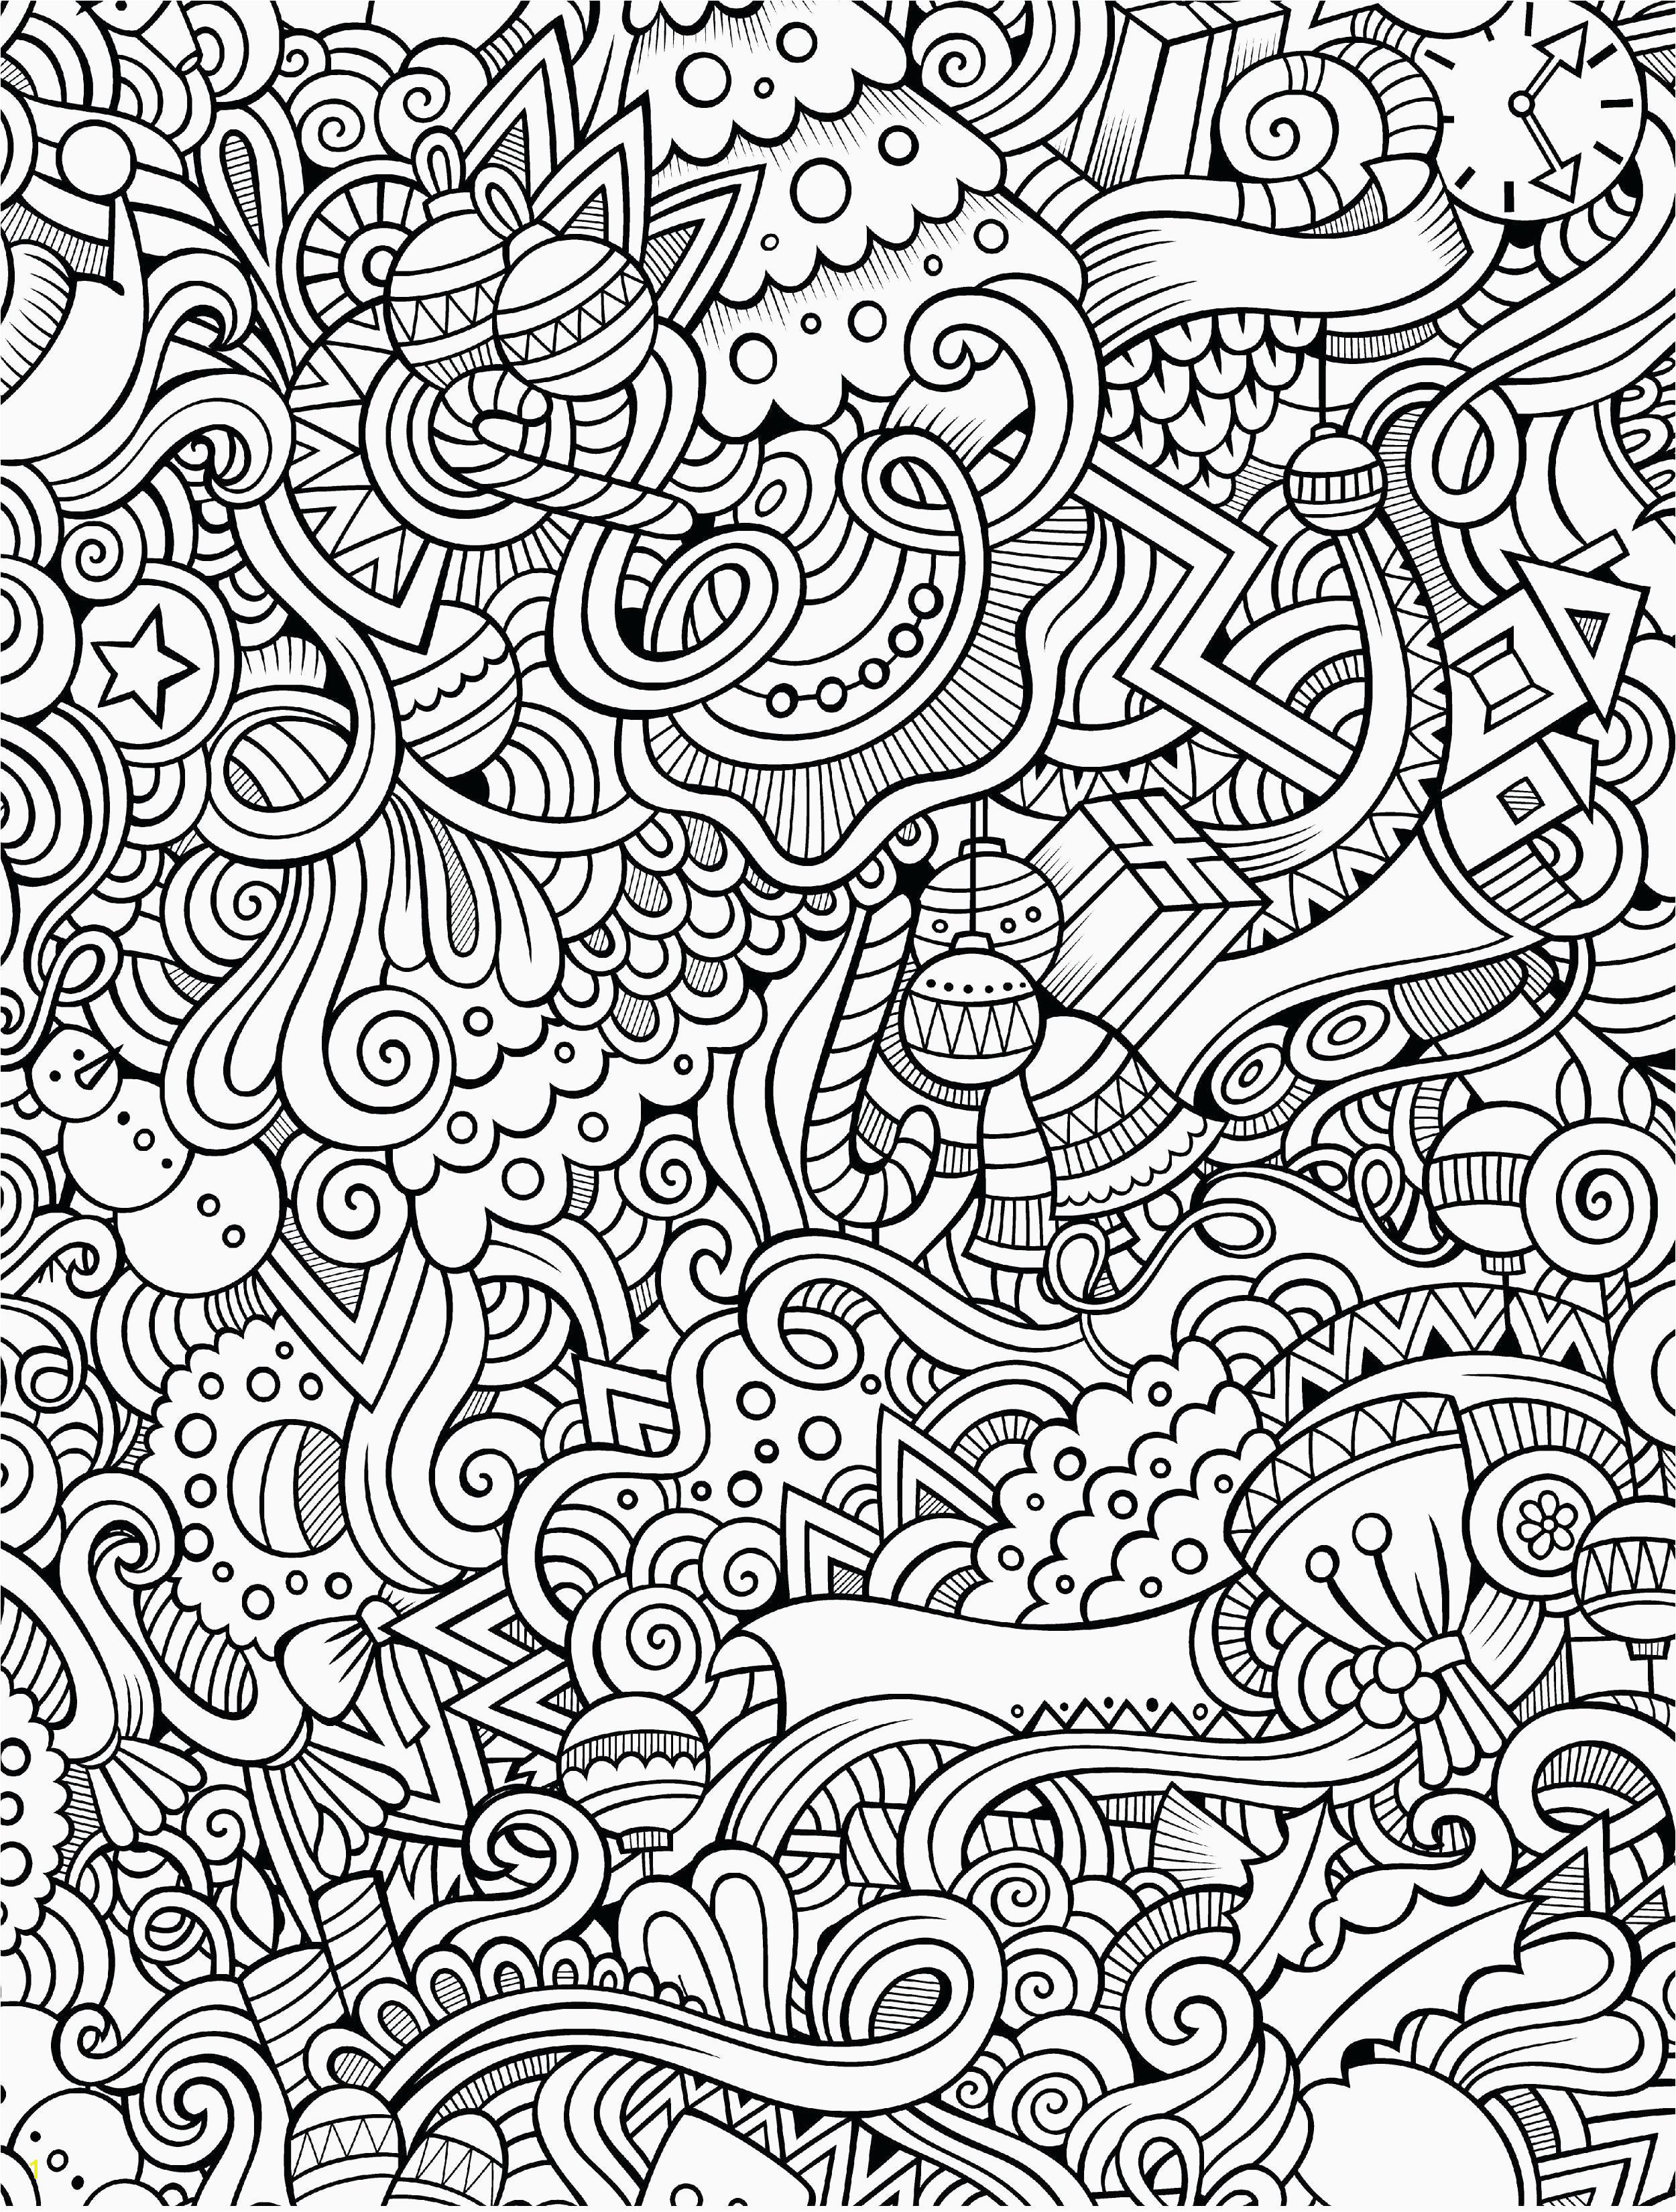 Abstract Coloring Pages for Teenagers Difficult 0d B4 2c Free Printable Coloring Sheet Inspirational Coloring